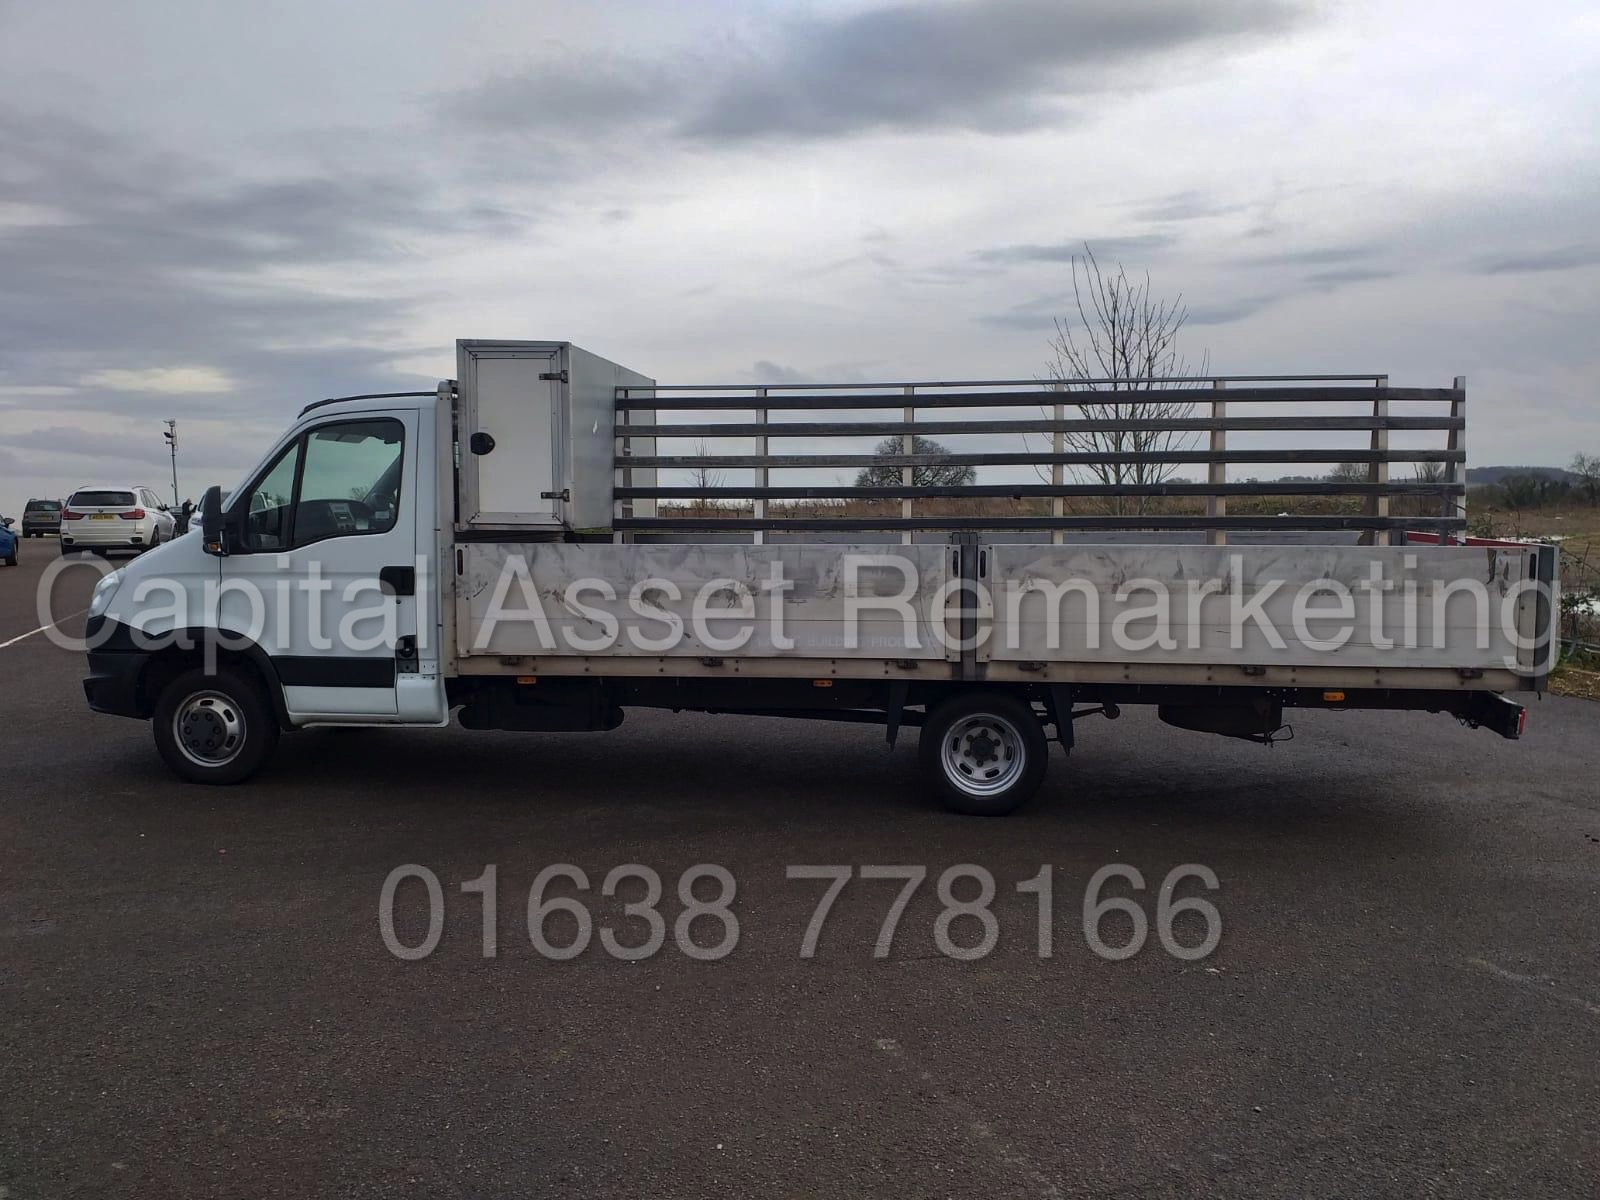 IVECO DAILY 35C13 *XLWB - ALLOY DROPSIDE* (2014 MODEL) '2.3 DIESEL - 127 BHP - AUTOMATIC' (3500 KG) - Image 5 of 20